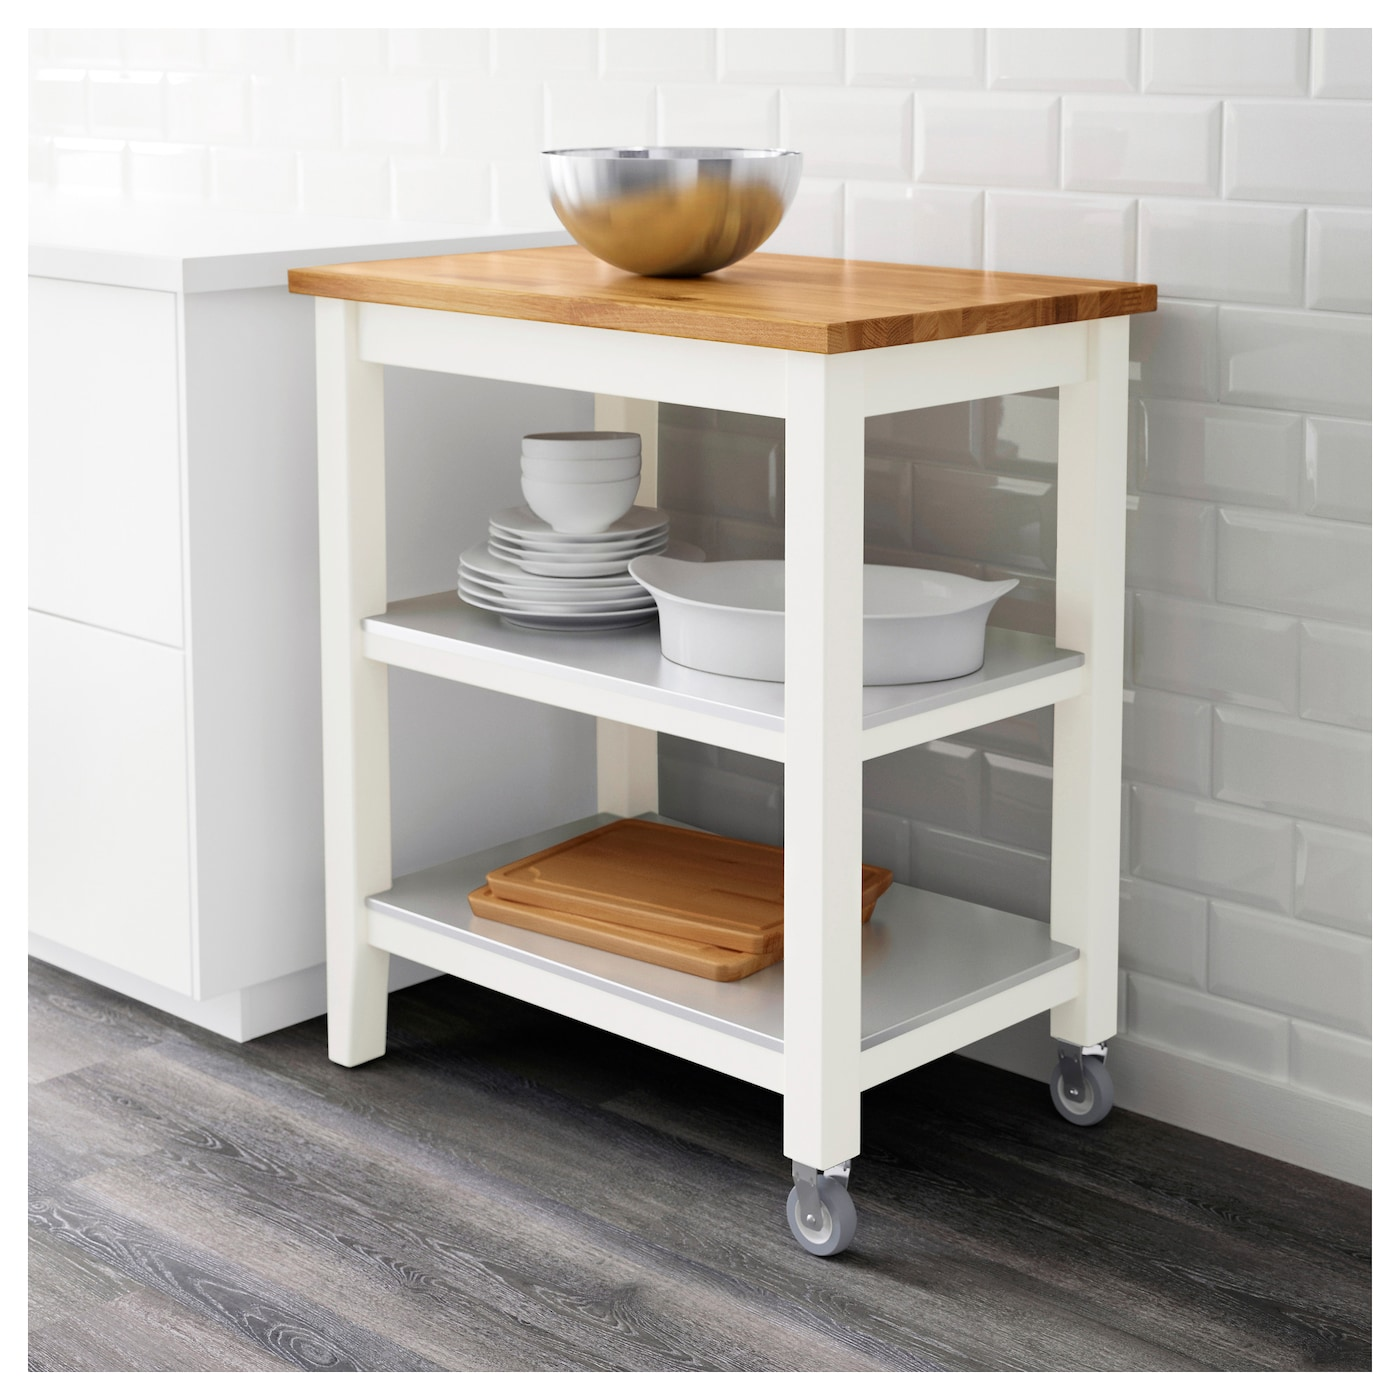 Stenstorp kitchen trolley white oak 79x51x90 cm ikea - Ikea meuble bas cuisine ...